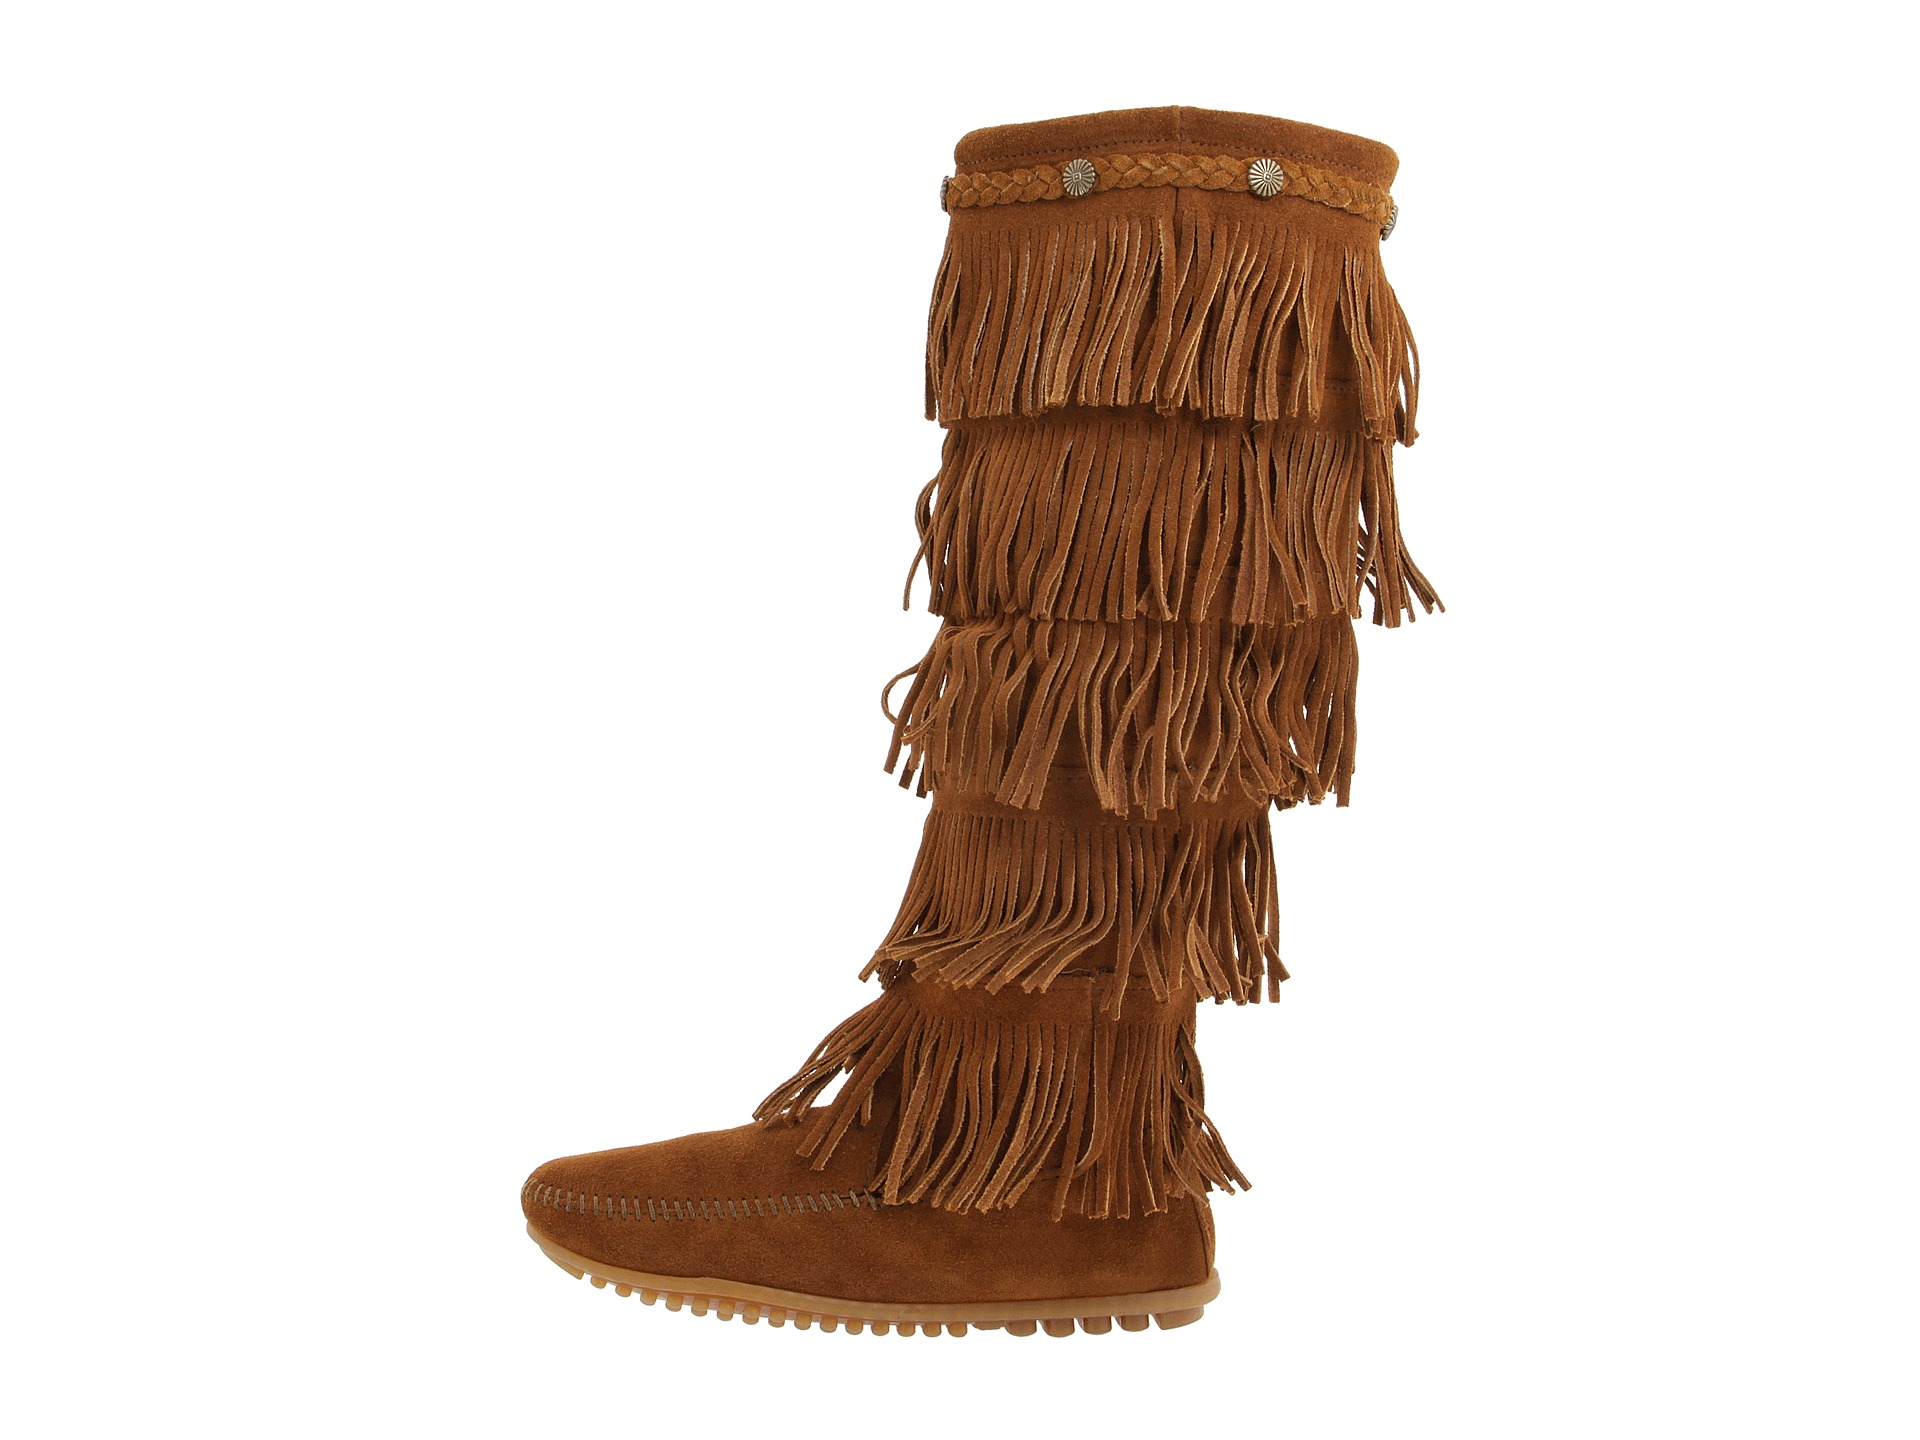 Nov 26,  · I went to about 1 week ago, and they had knee high fringe boots. they came in black, tan, burnt orange and mustard. I got black because they go with shopnow-bqimqrqk.tk: Resolved.